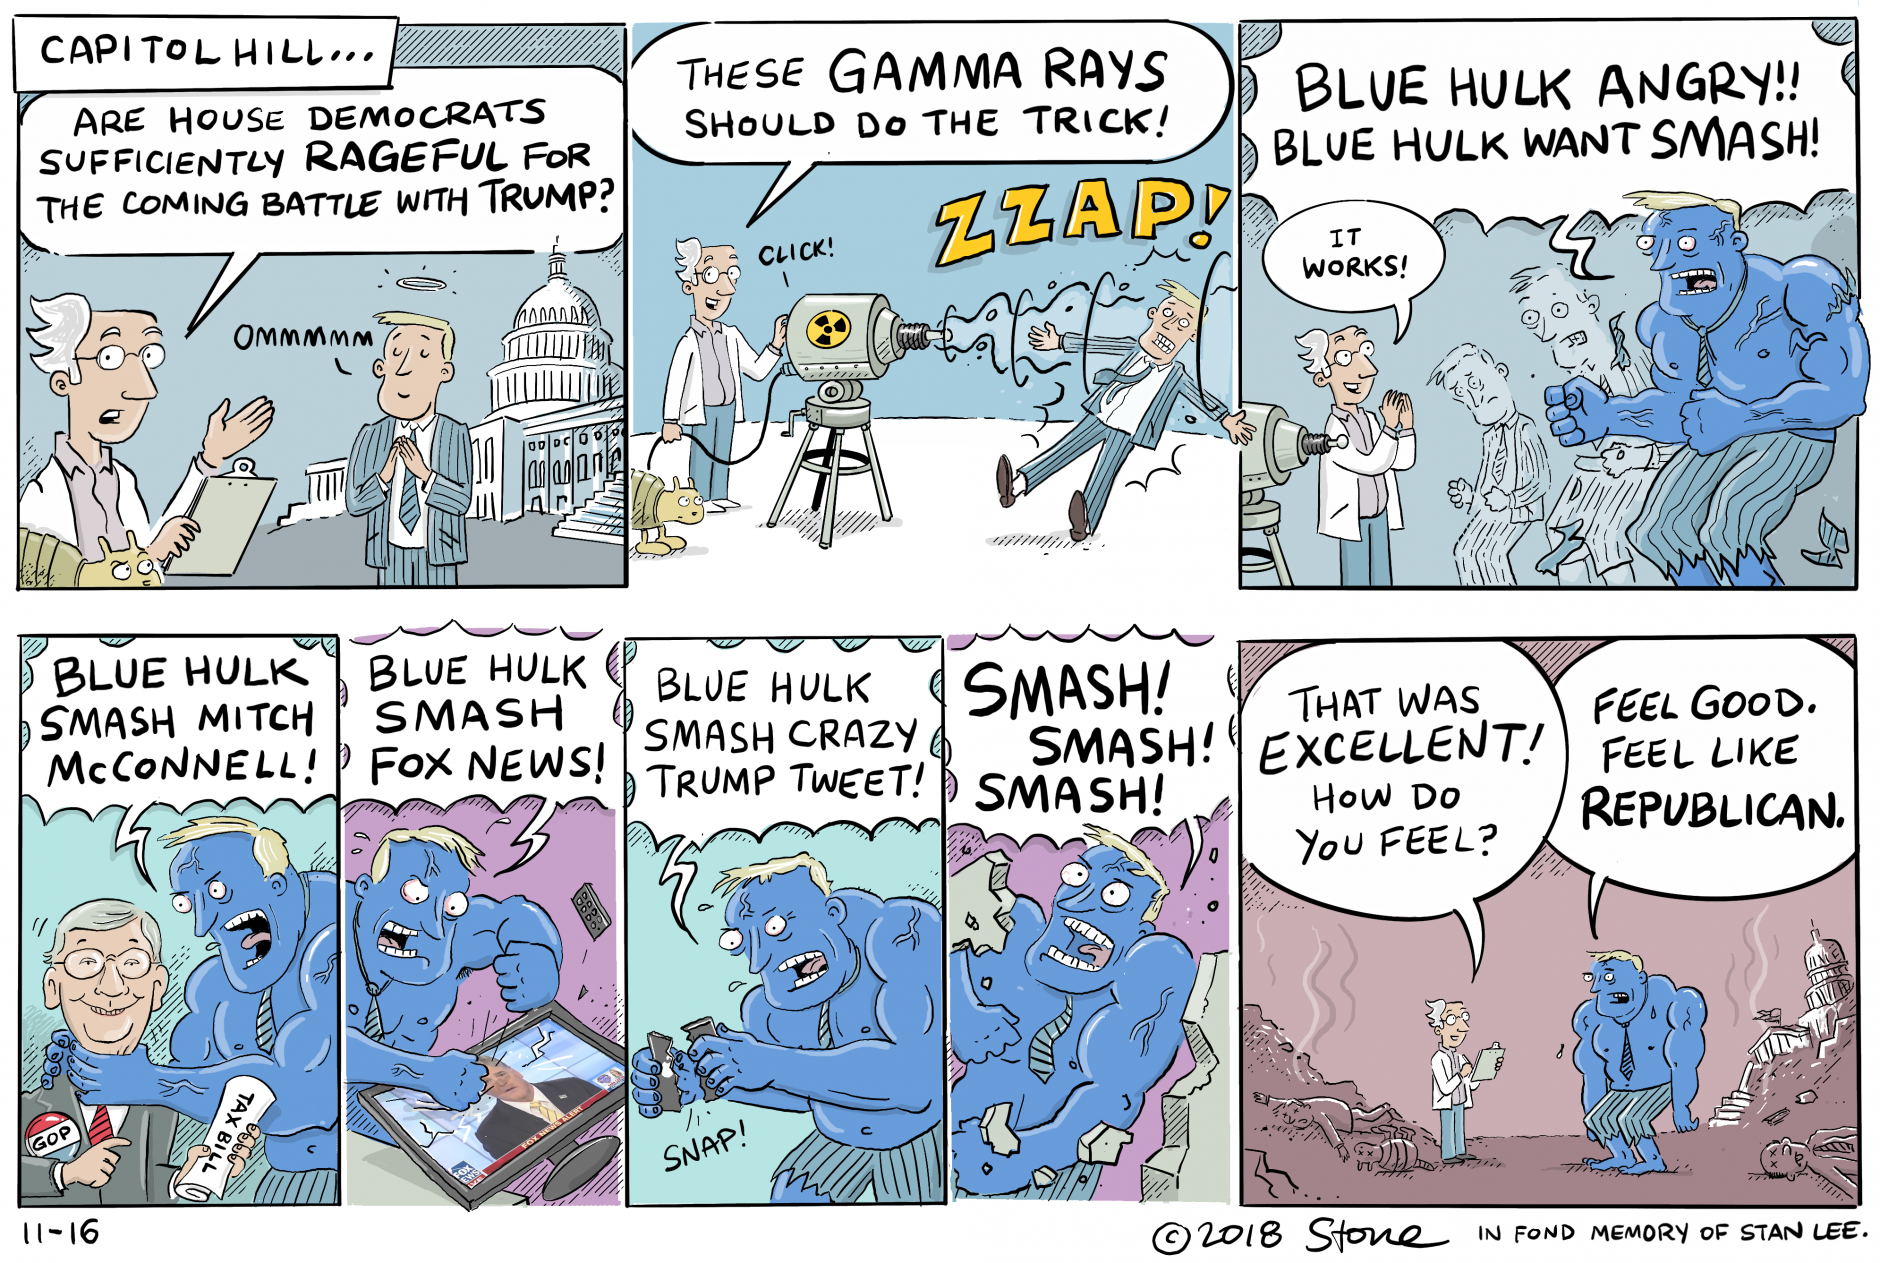 Zeno's Blue #Hulk is a smashing success! In fond memory of #StanLee